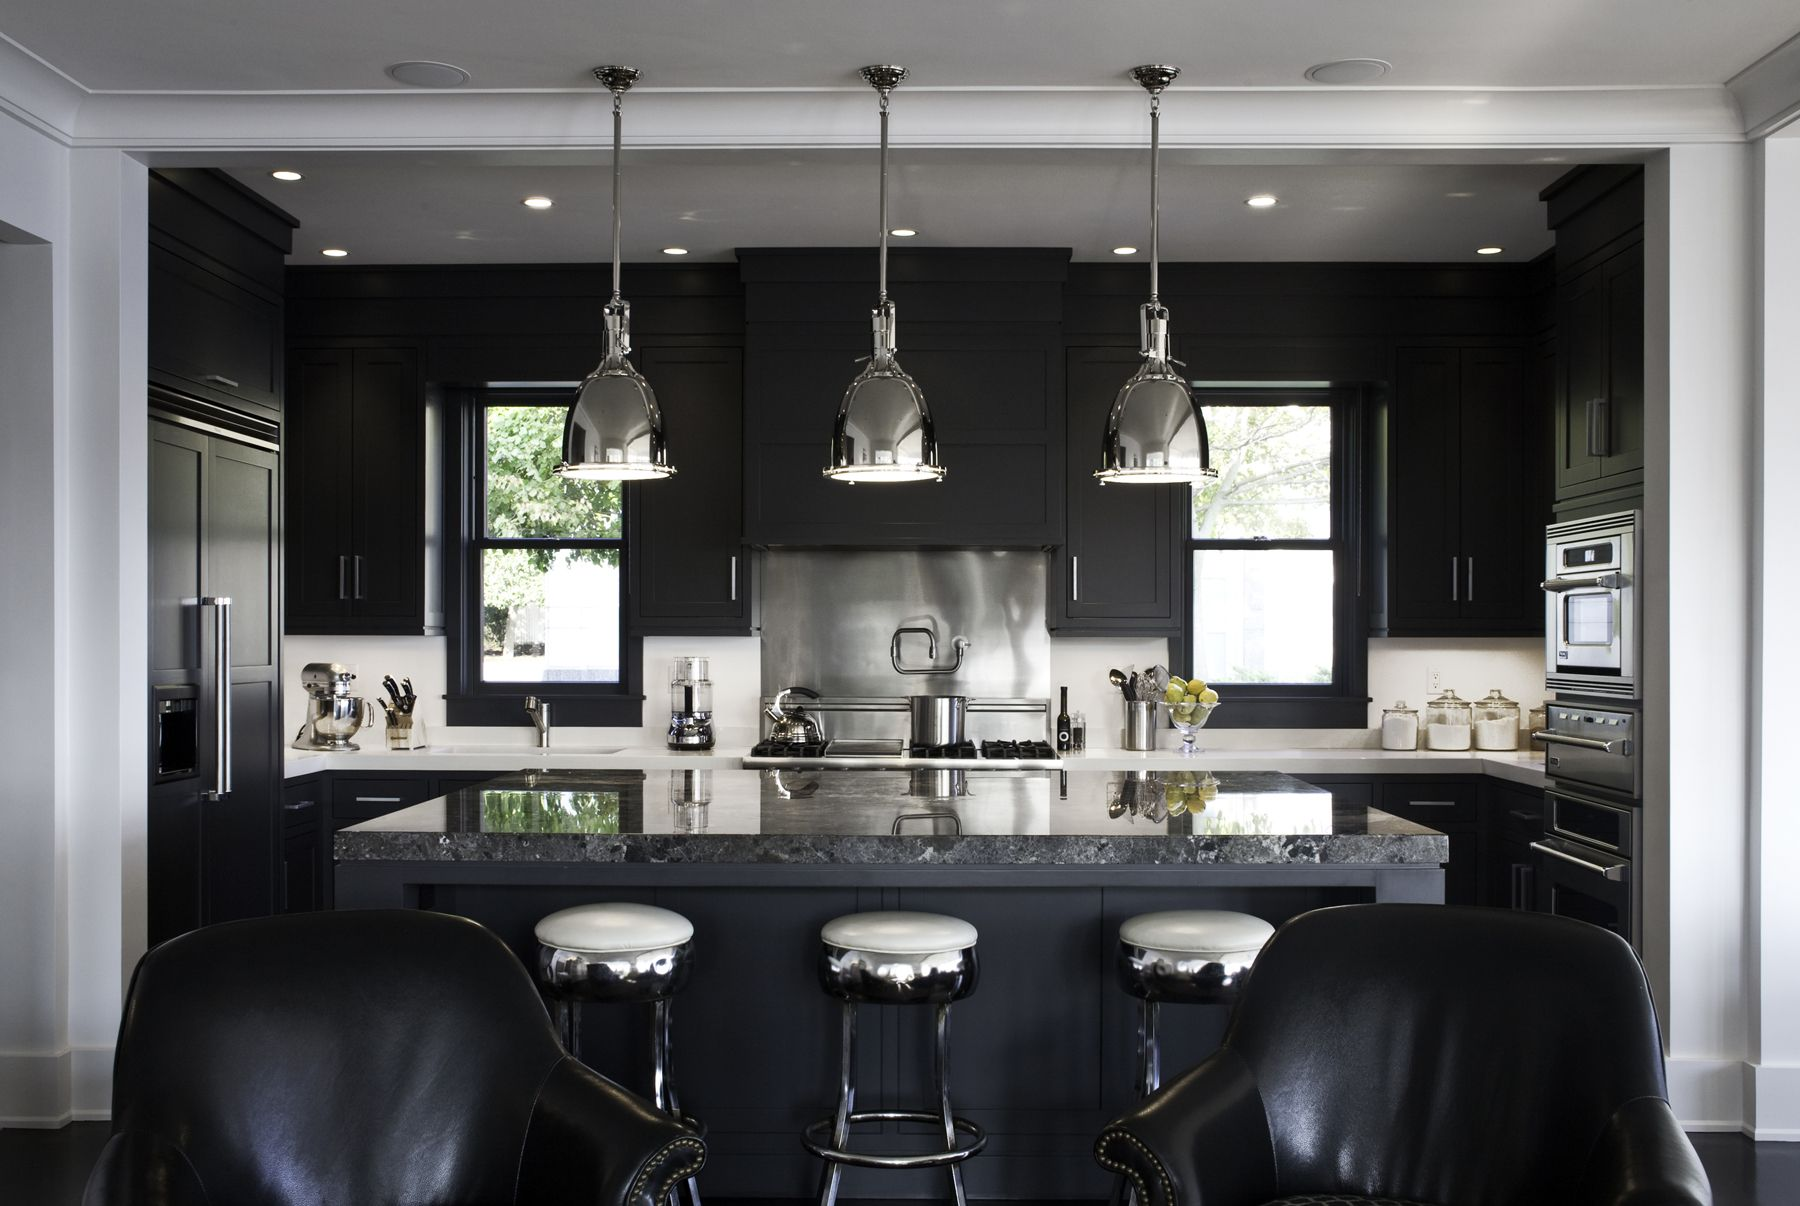 Kitchens With Black Cabinets Glamorous 30 Best Black Kitchen Cabinets  Kitchen Design Ideas With Black . Inspiration Design